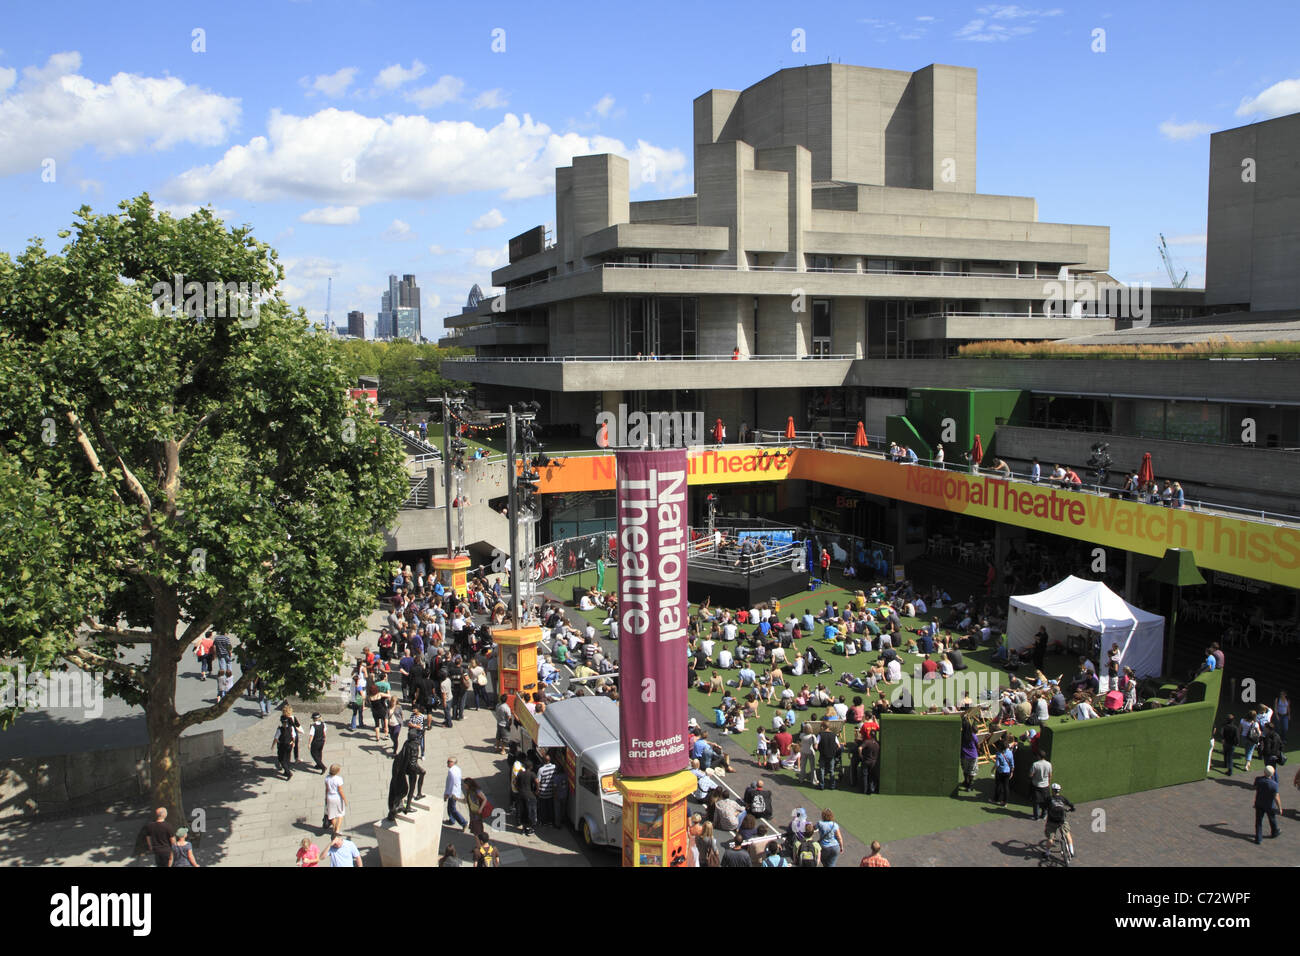 The National Theatre, South Bank, London UK - Stock Image